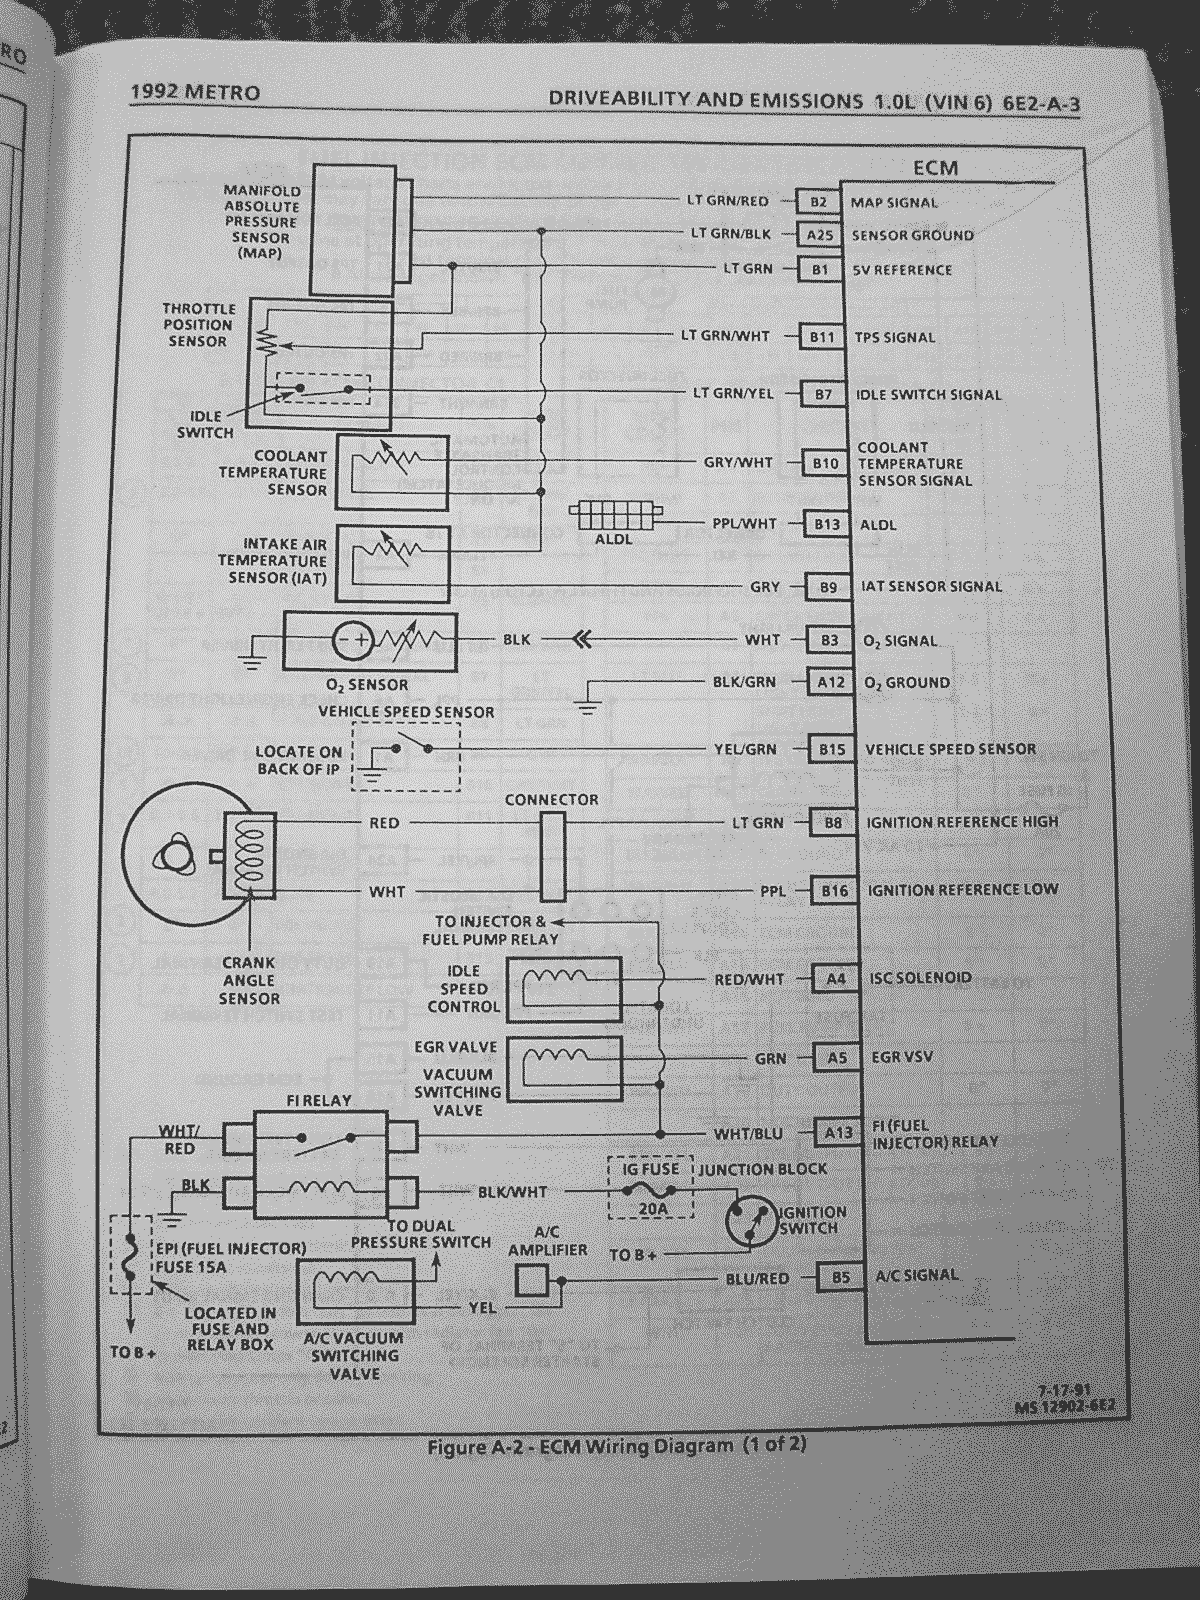 radio wire diagram for a 1994 geo metro circuits. radio ... 1990 geo metro fuse box diagram